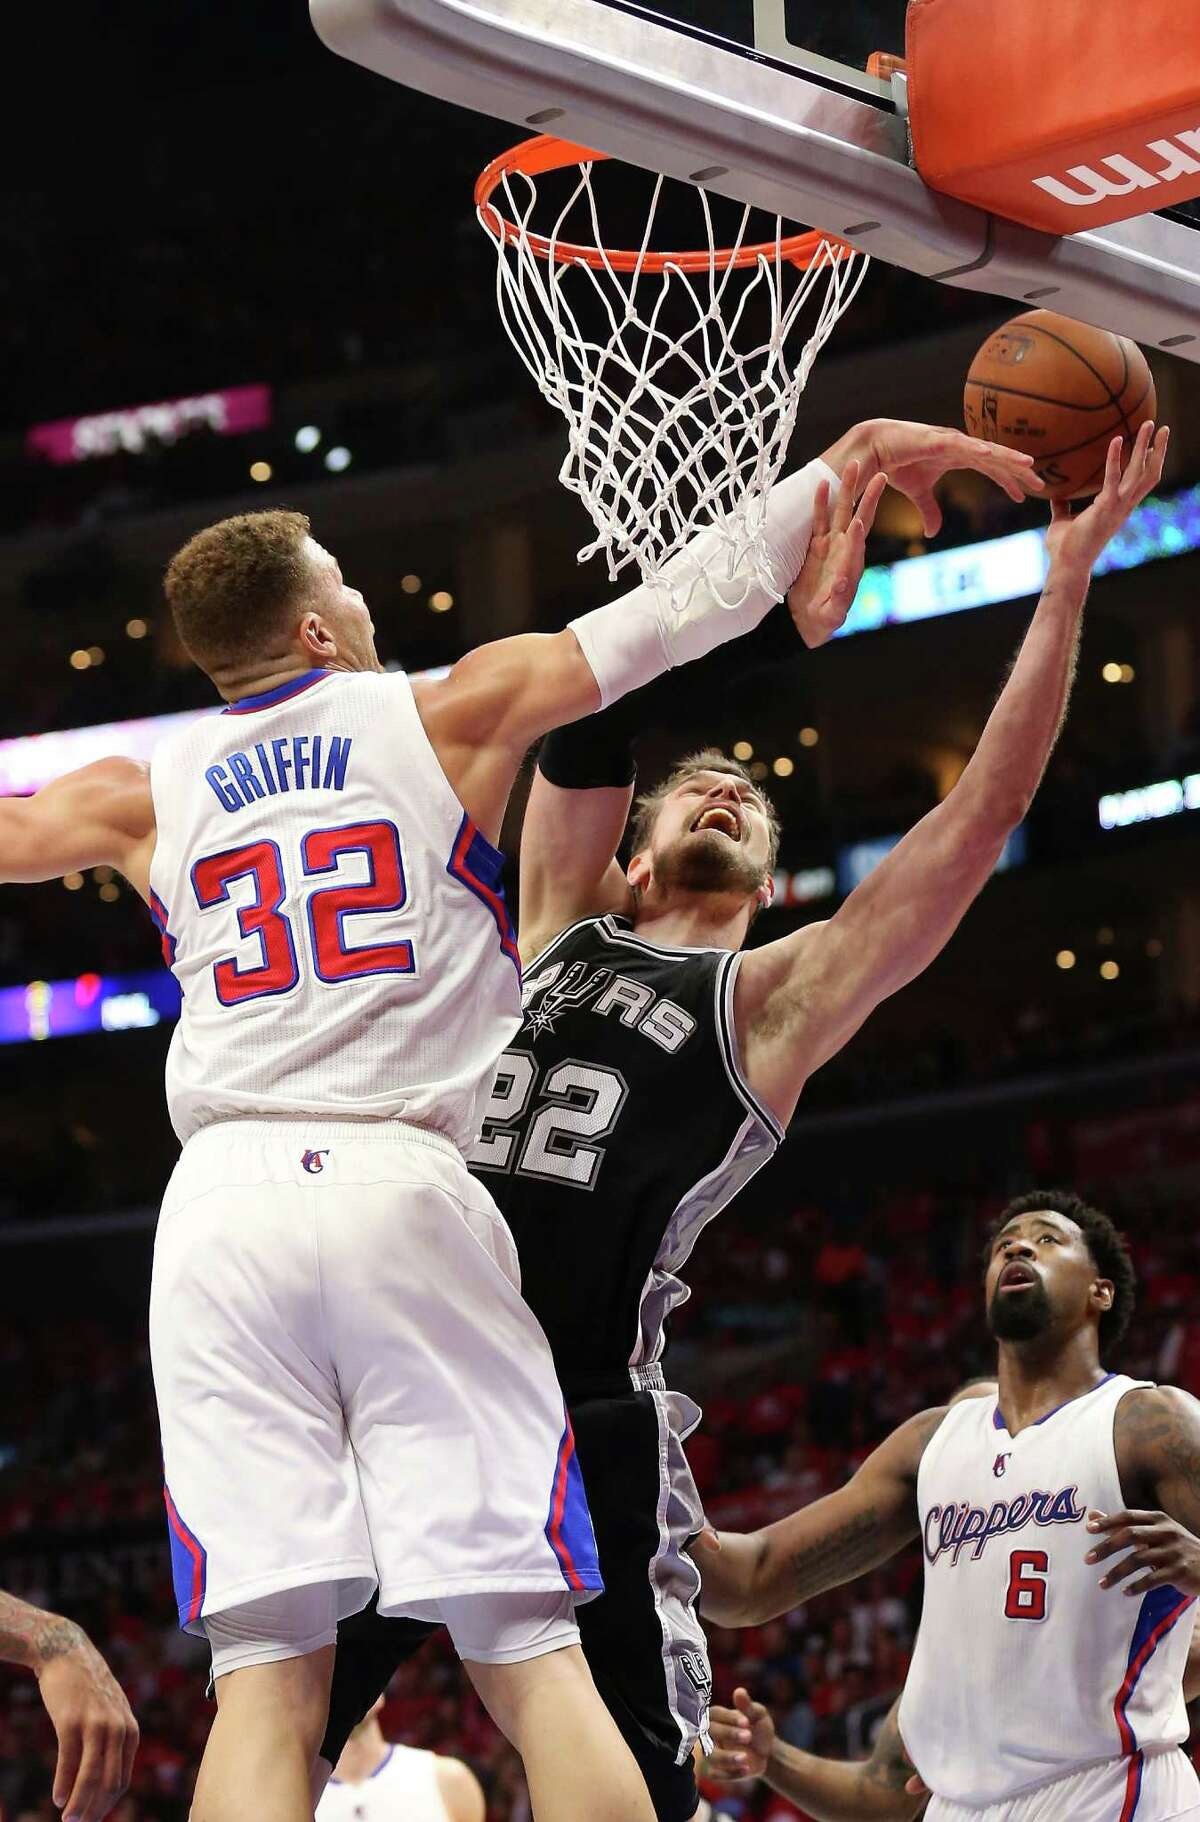 The Spurs' Tiago Splitter shoots over the Clippers' Blake Griffin during Game 1 on Sunday.